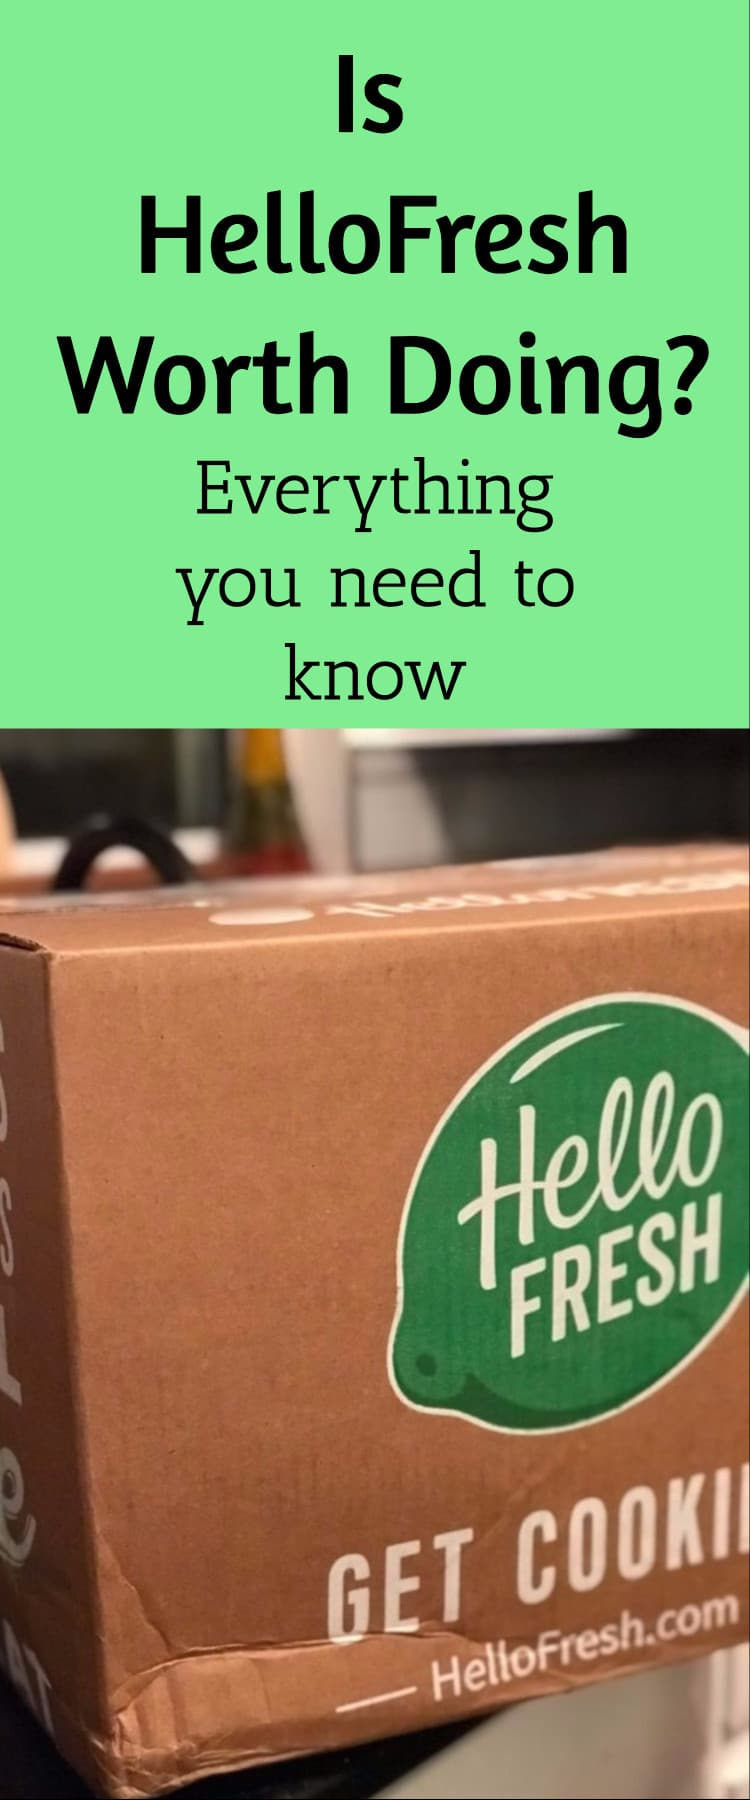 HelloFresh review and discount code via @clarkscondensed